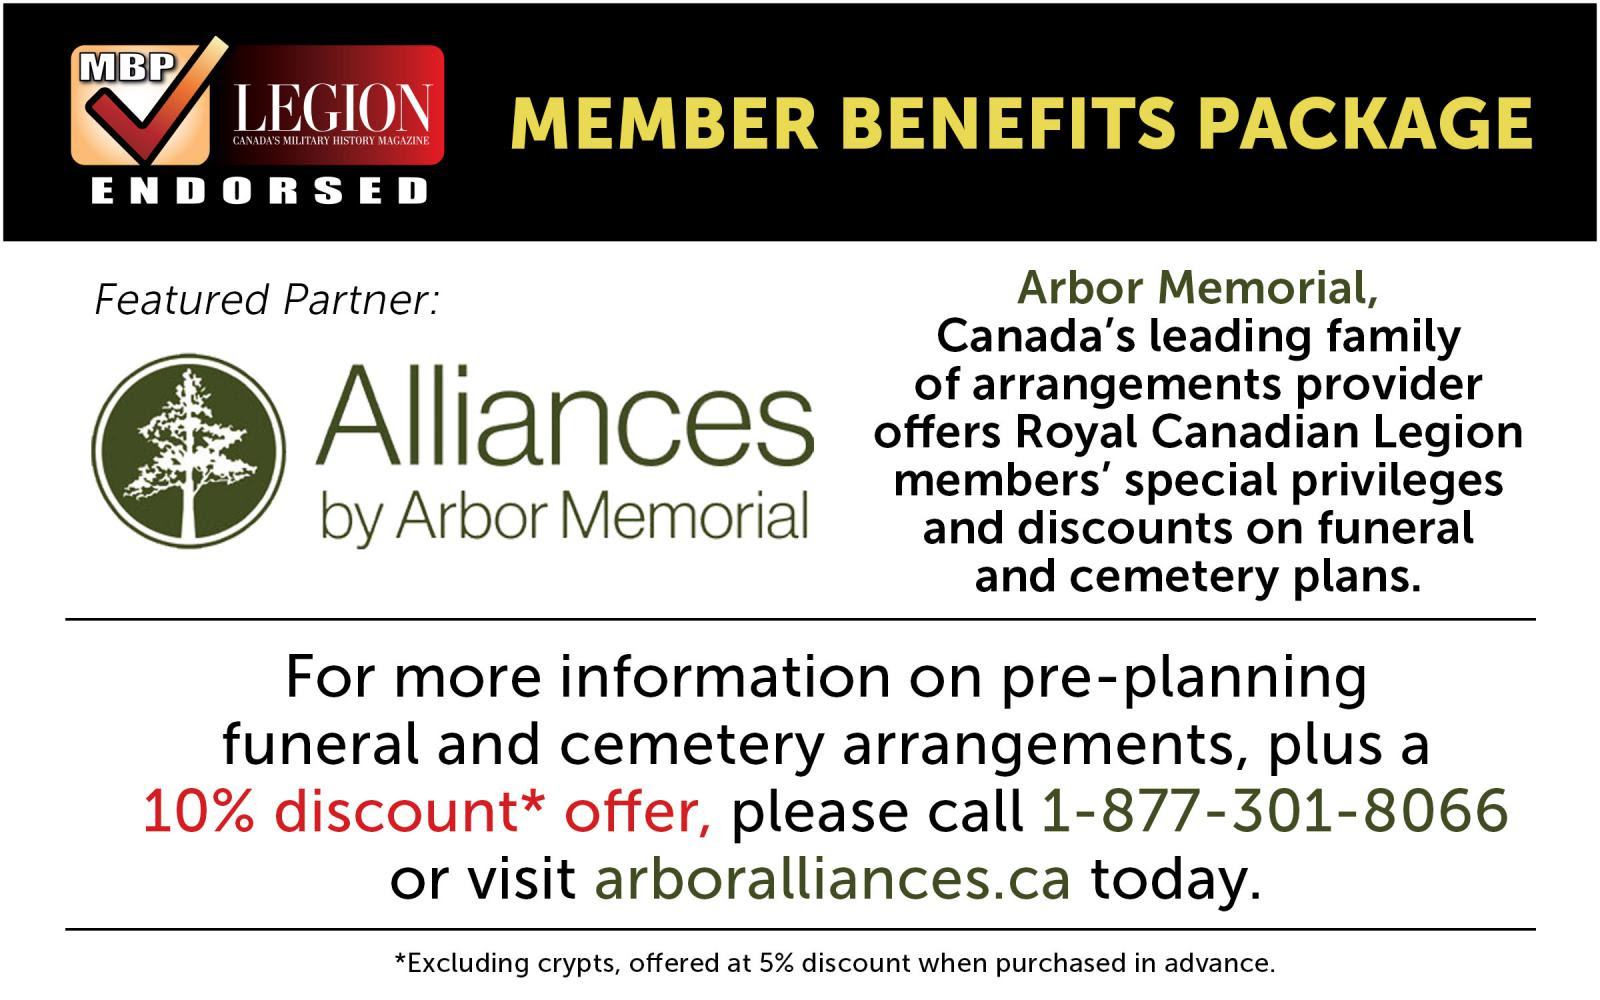 Alliances by Arbor Memorial